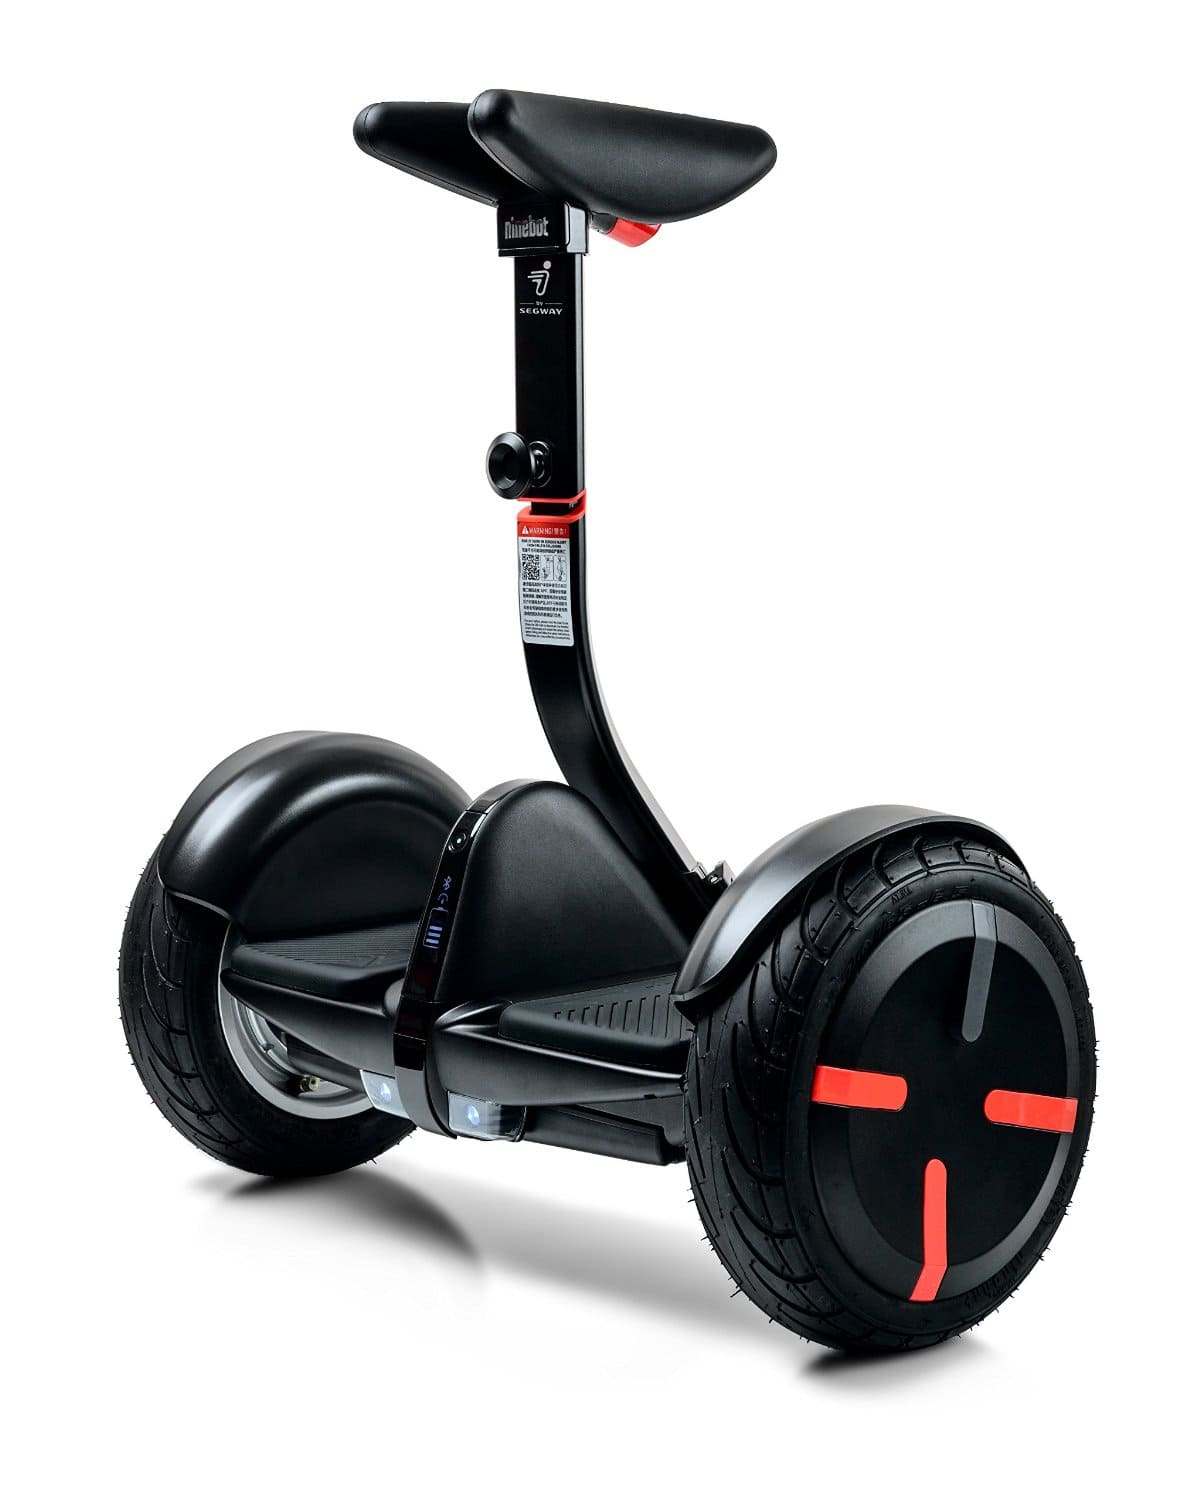 Segway miniPRO Smart Self Balancing Personal Transporter with Mobile App Control » $699 for Prime Day (Was $999, Retail $1,299)